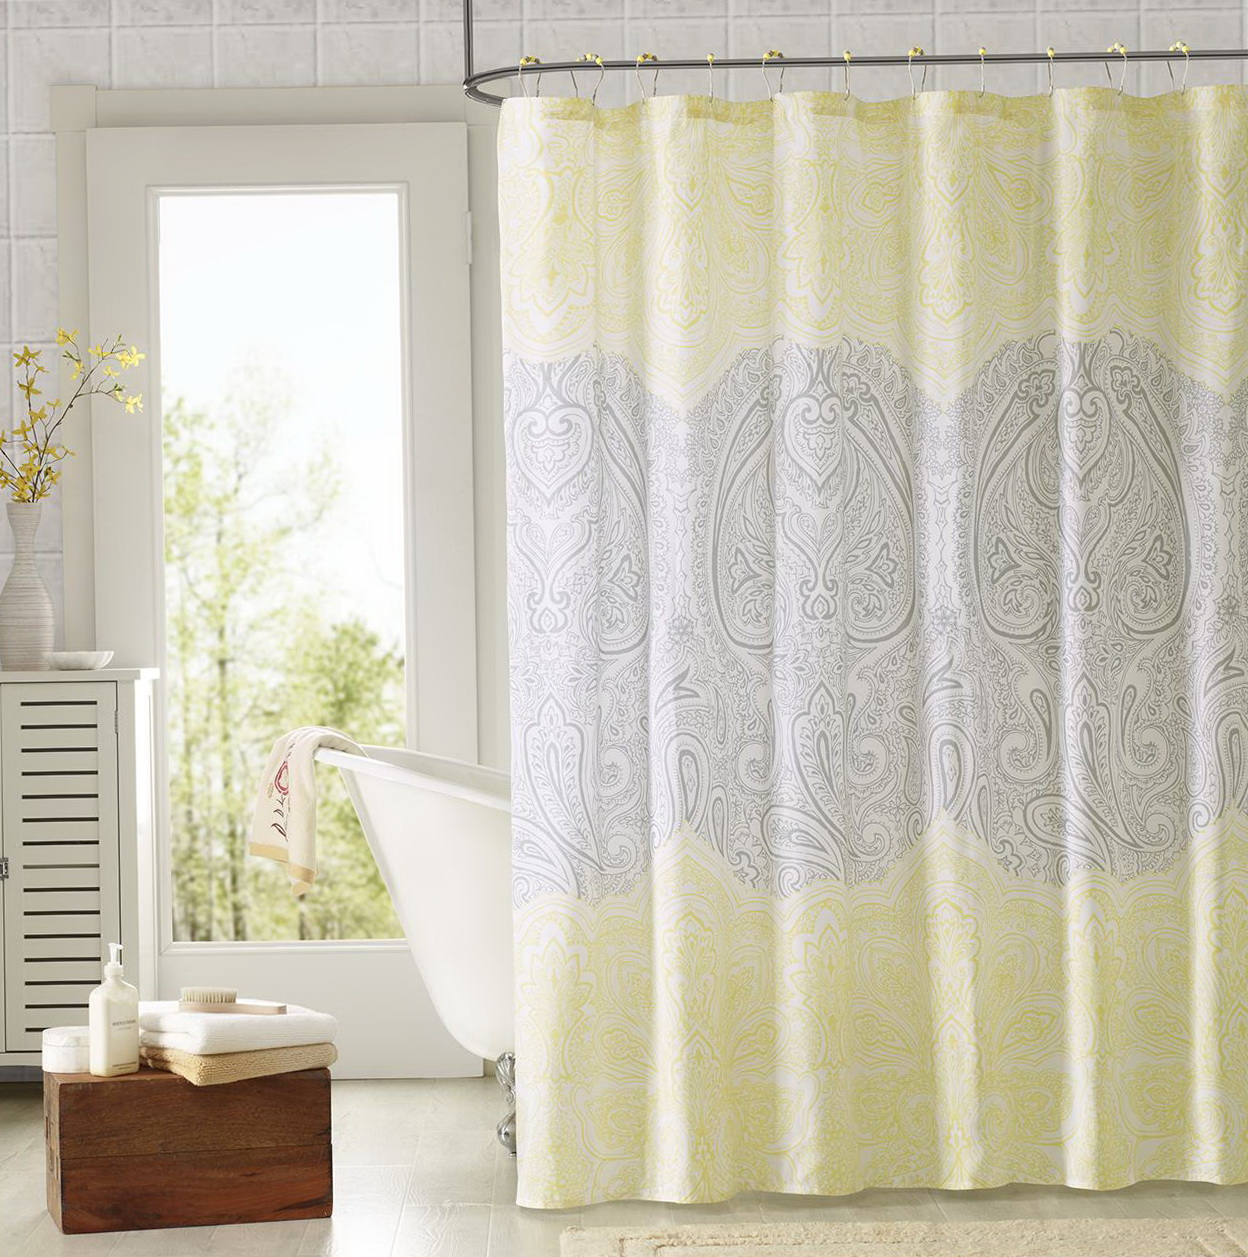 Bathroom Curtain Sets Sale Home Design Ideas